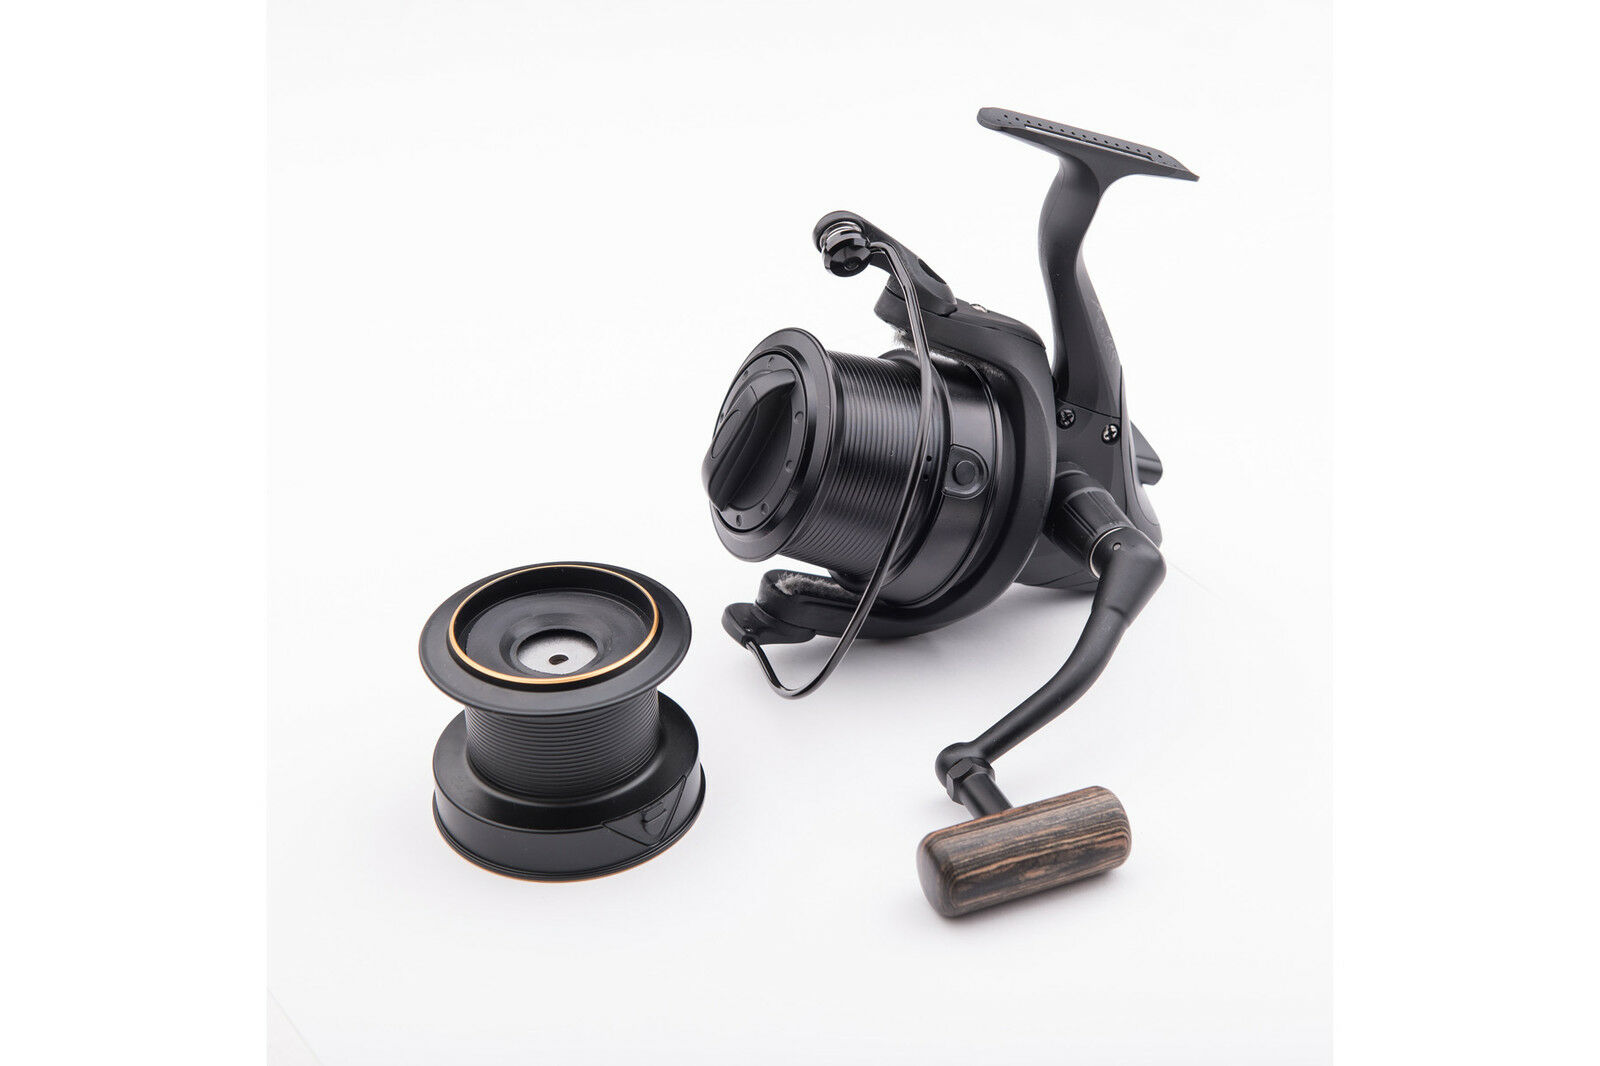 Wychwood Riot 65S Big Pit Fixed Spool Reel   Carp Fishing   Leeda   C0875